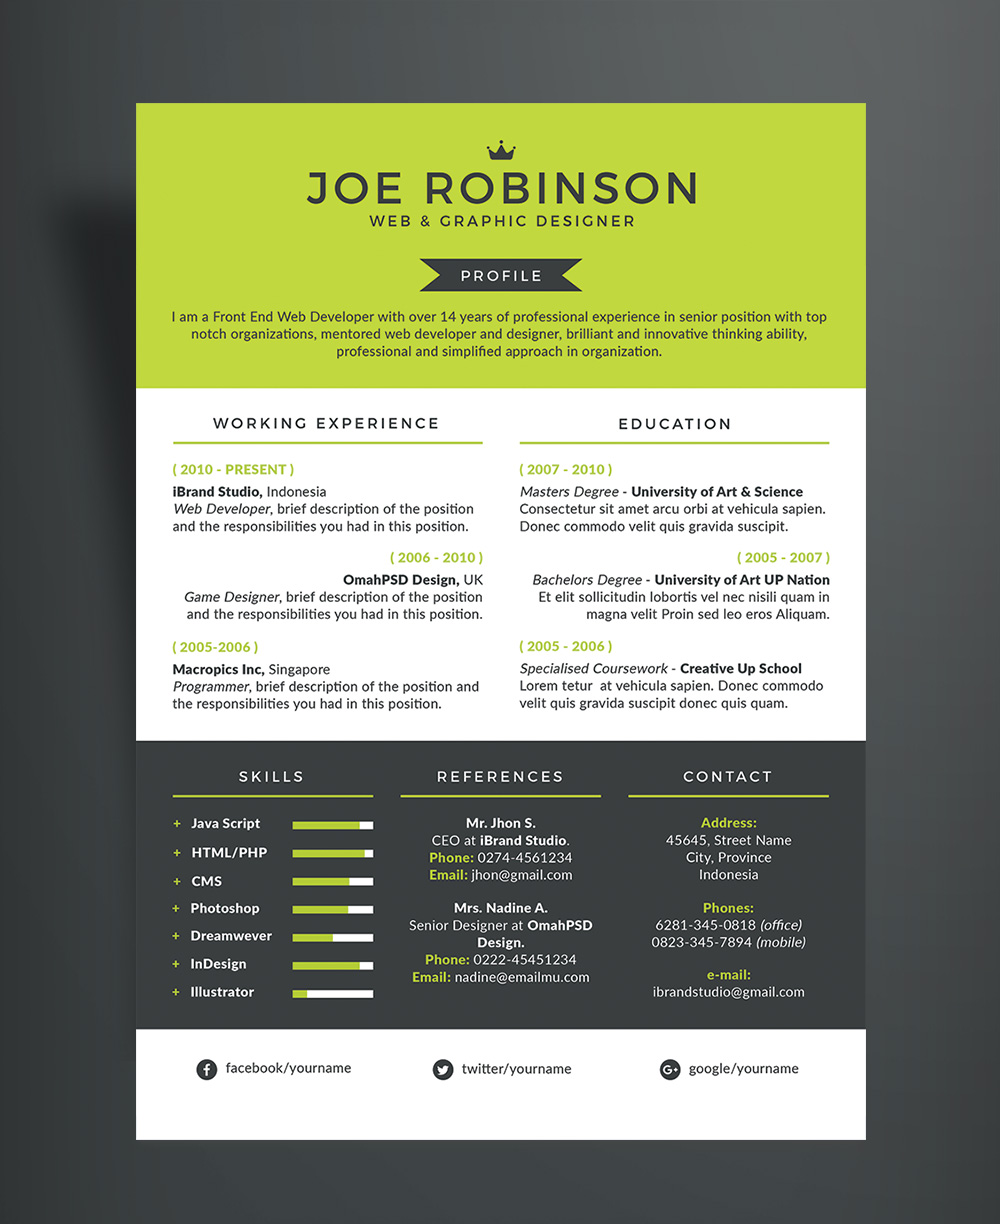 elegant professional resume cv design template in 3 elegant professional resume cv design template in 3 different colors psd file